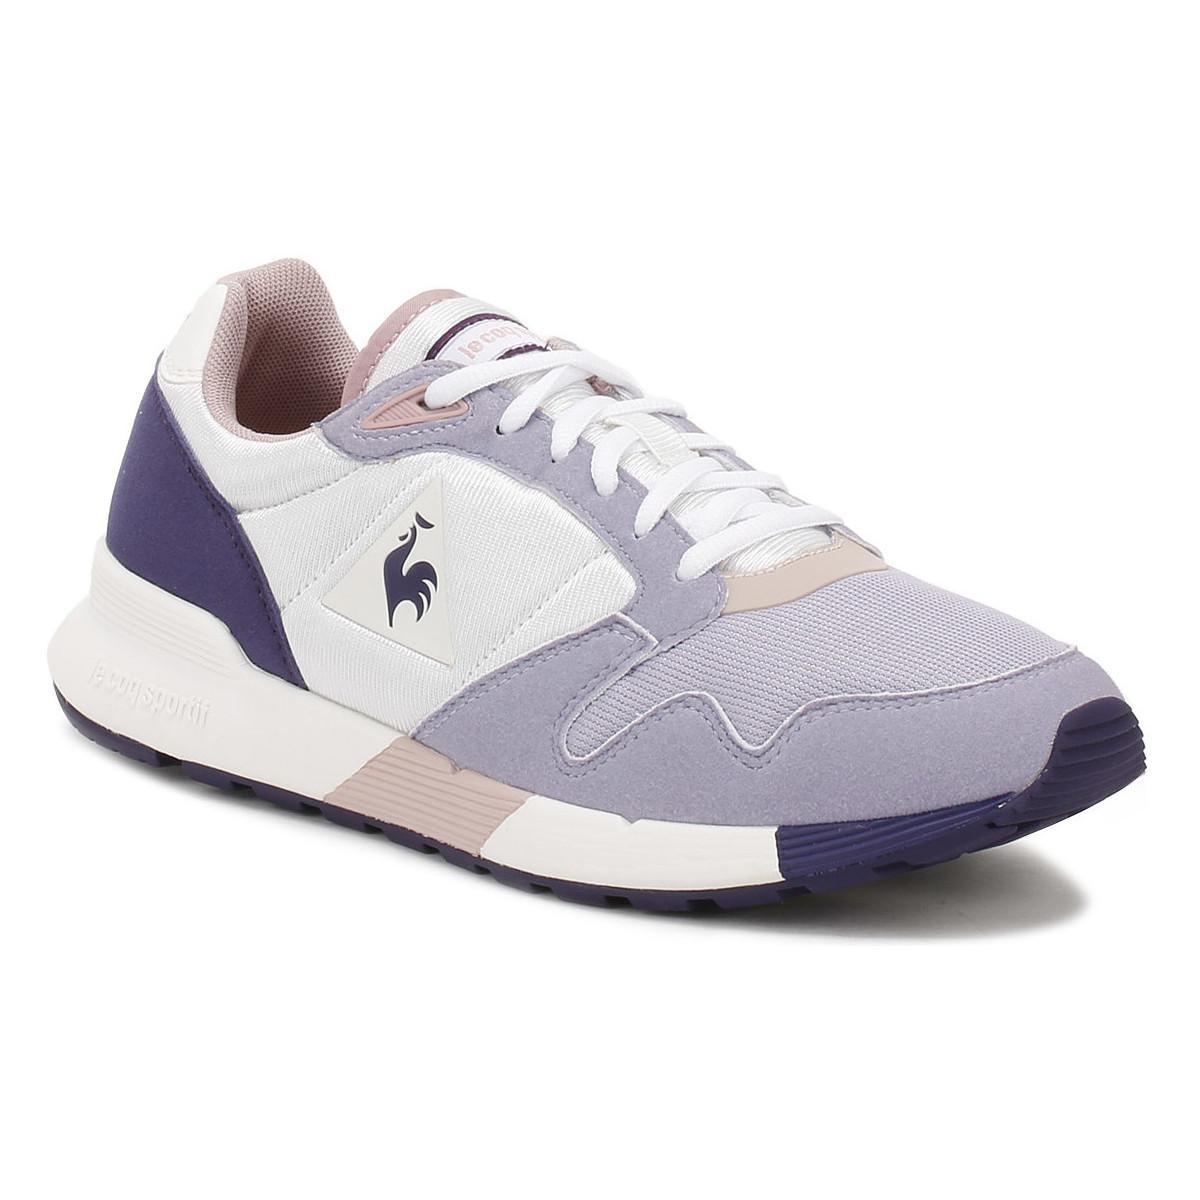 Le Coq Sportif Suede Womens Optical White / Heirloom Lilac Omega X W Trainers